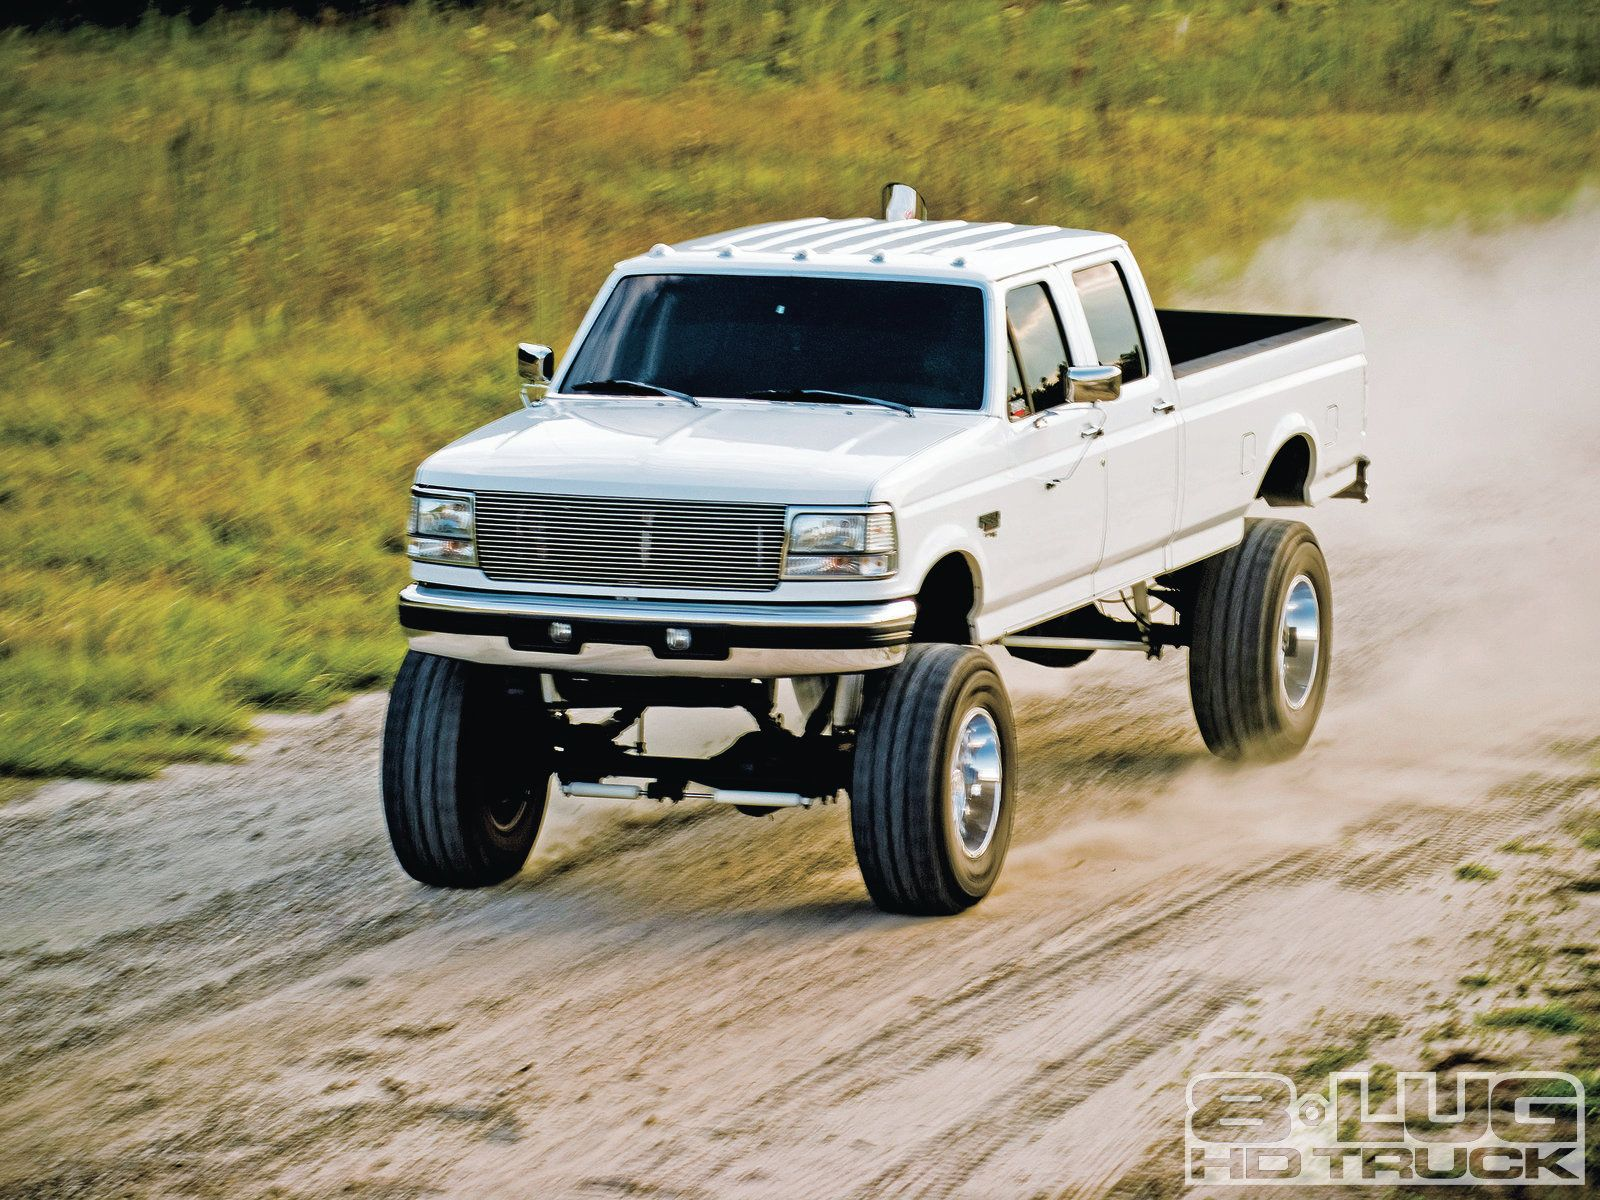 Still my overall favorite body style of ford 7 3 powerstroke crew cab long box